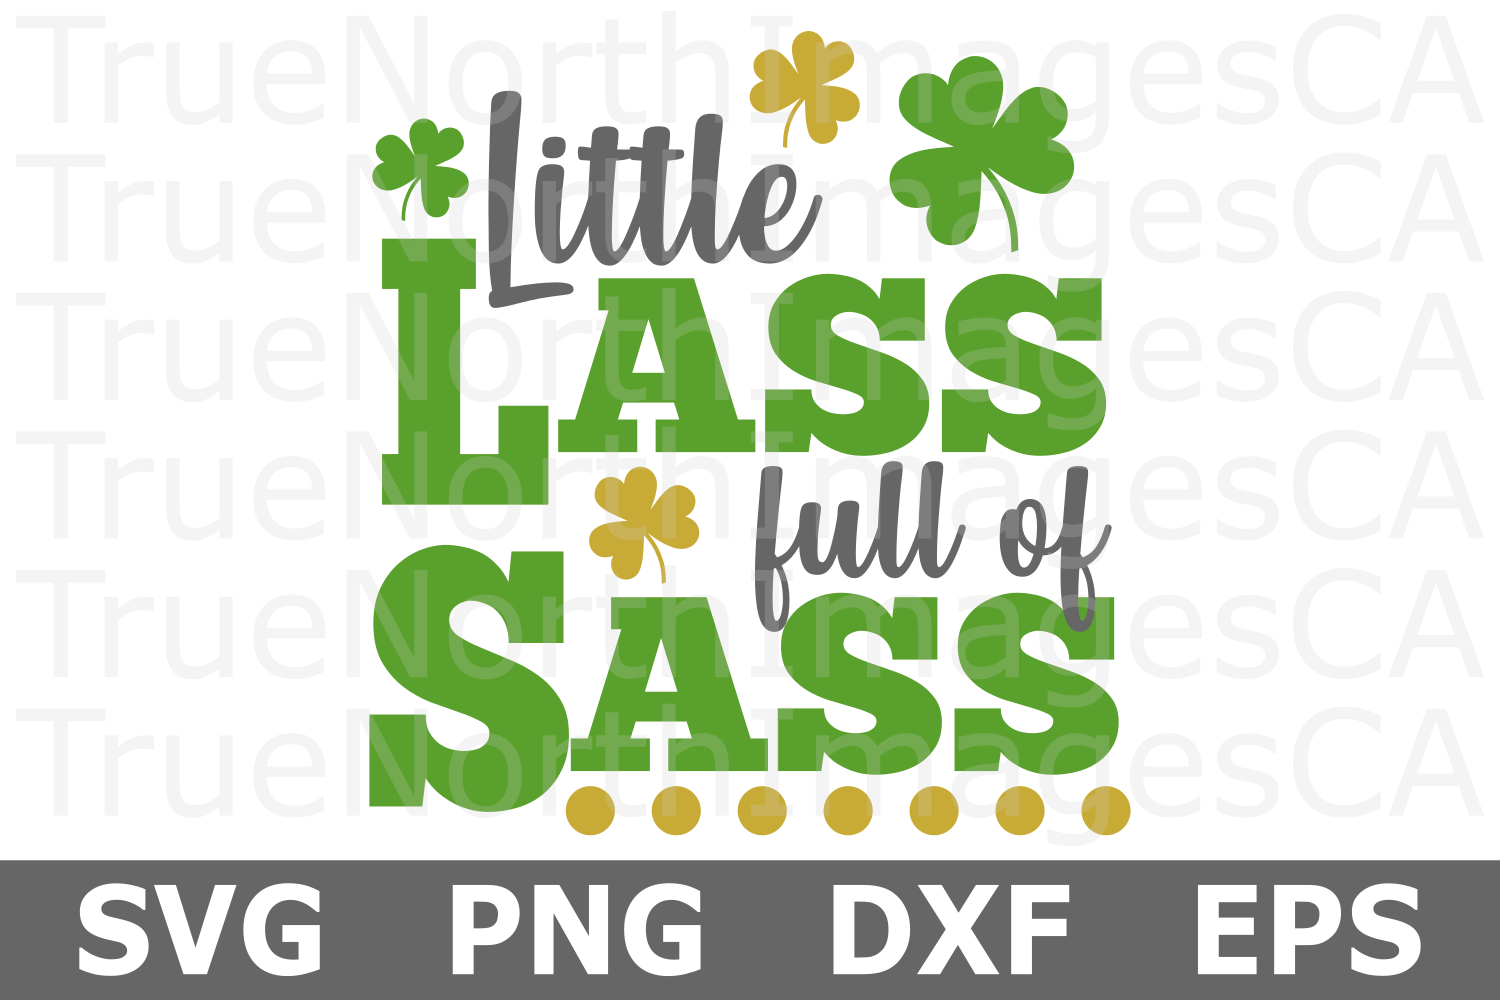 Little Lass Full of Sass - St Patricks Day SVG Cut File example image 1